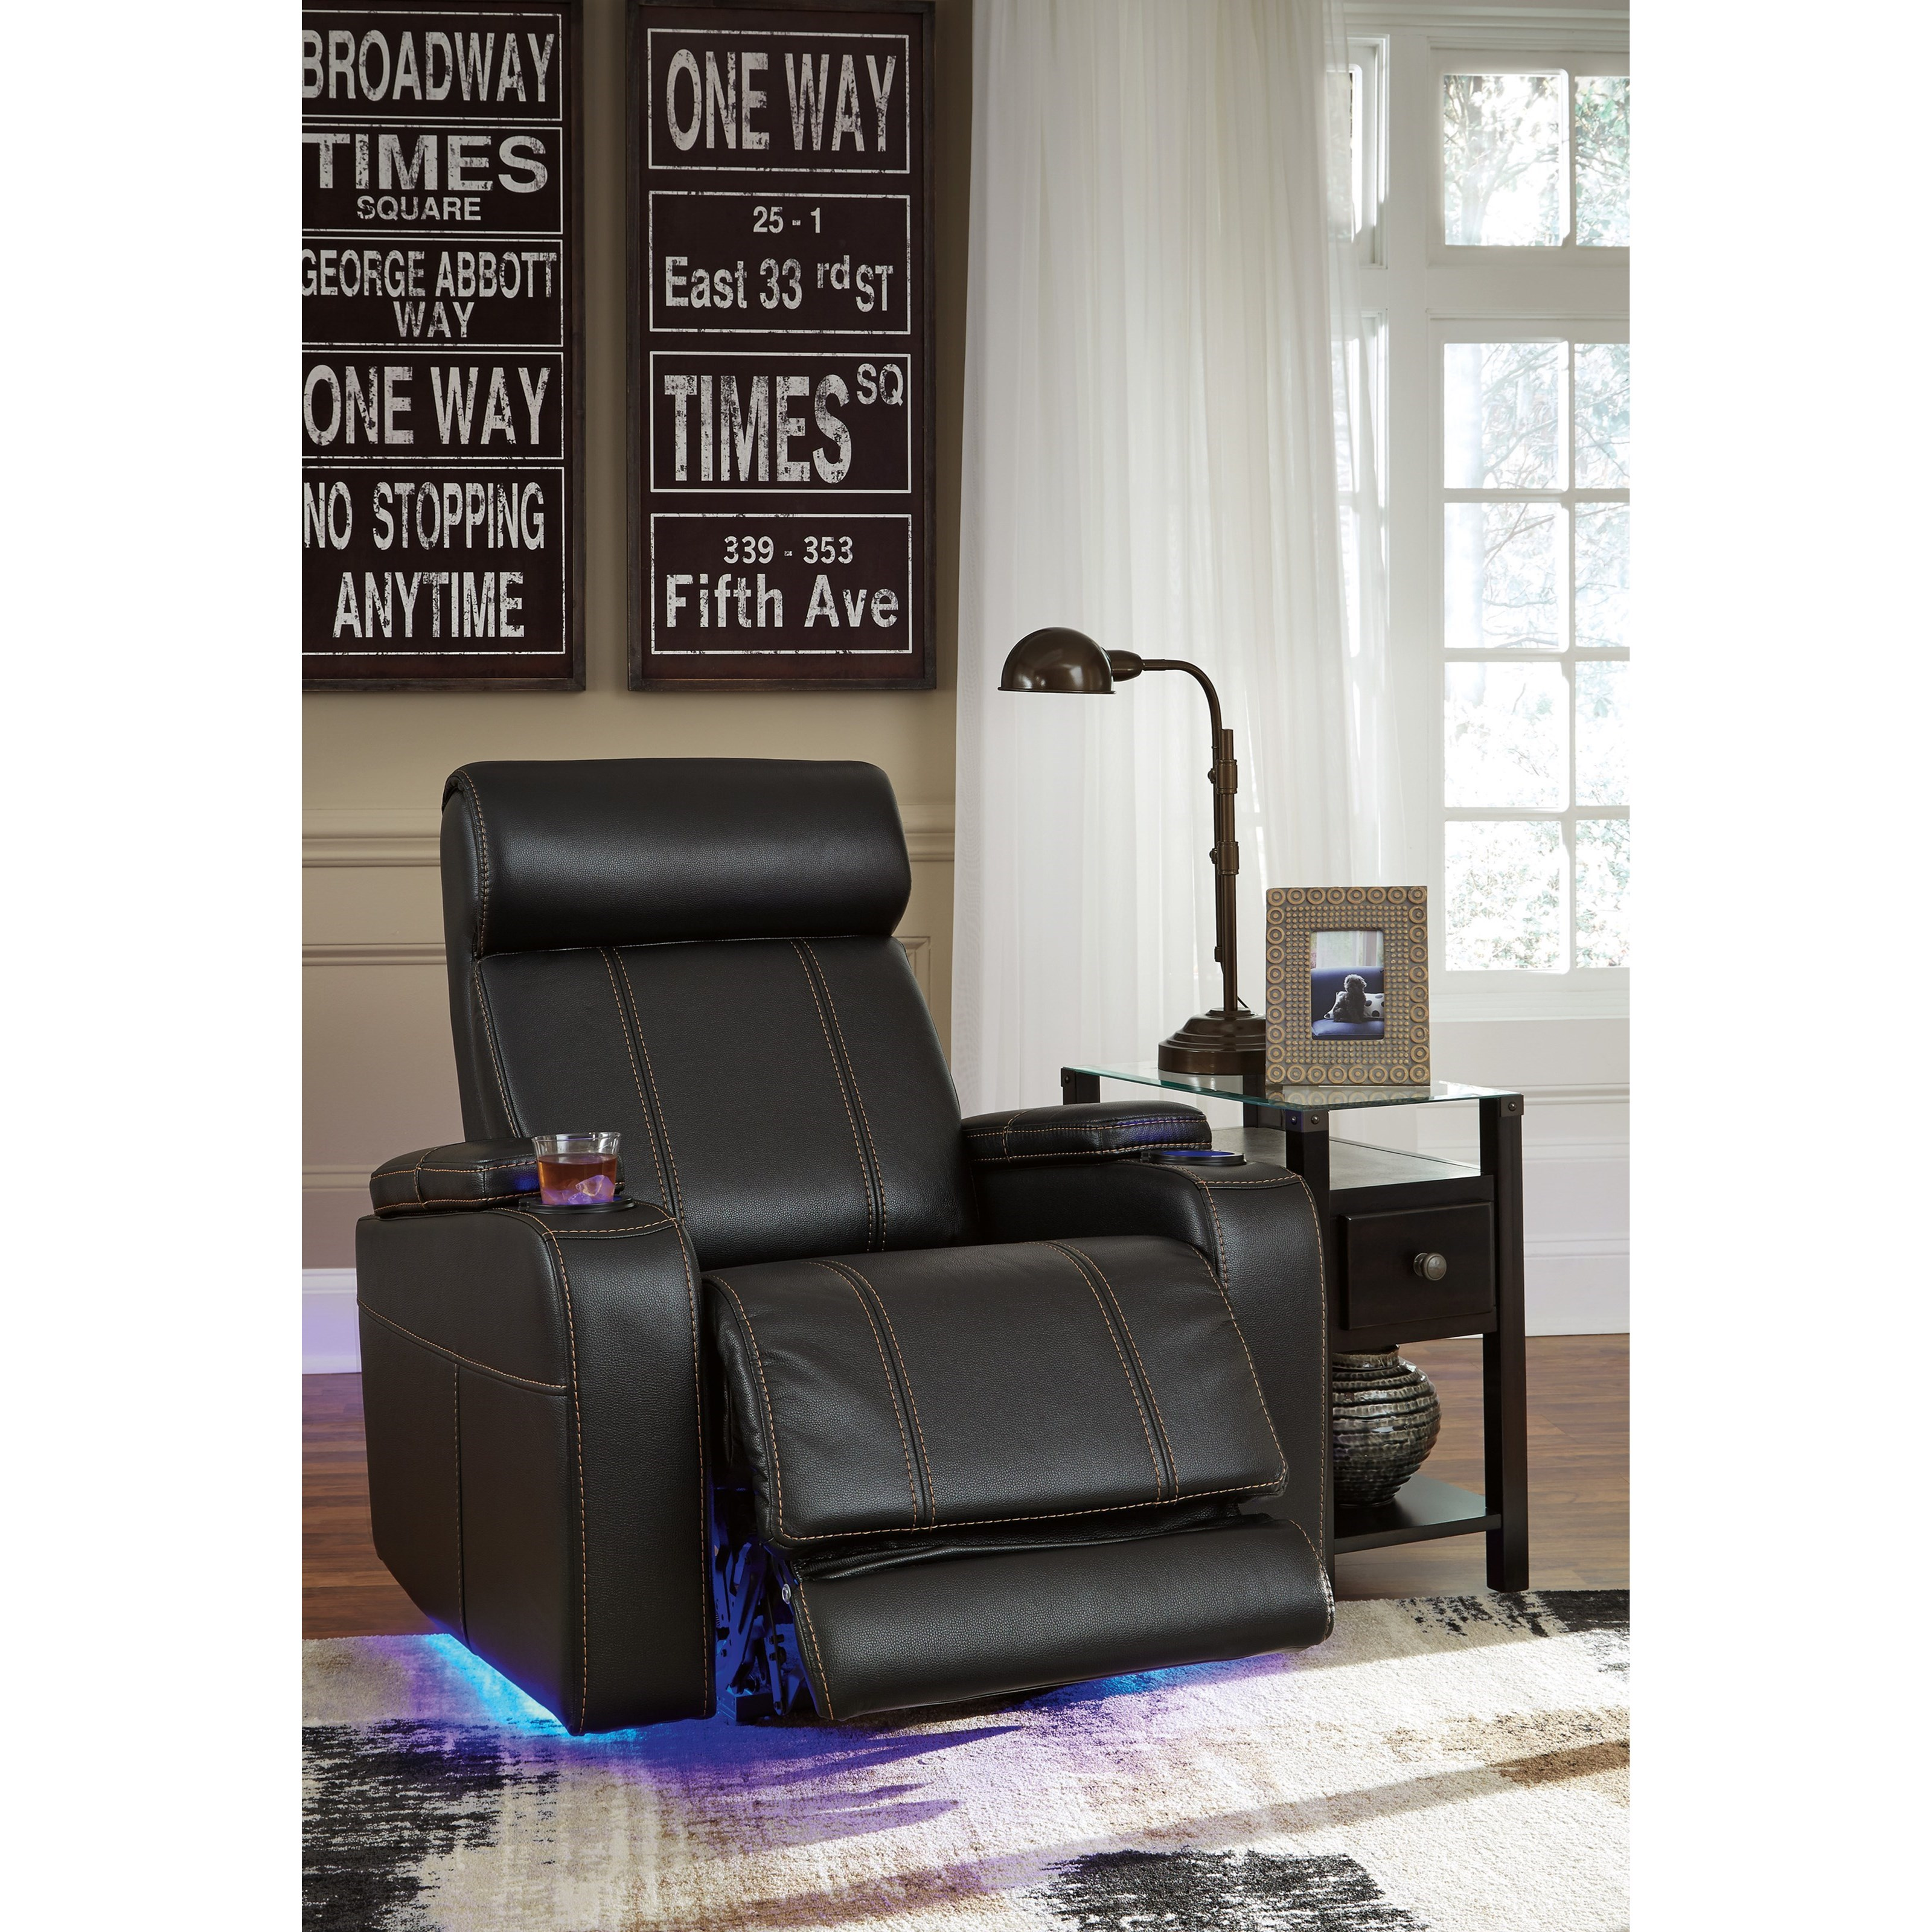 Faux Leather Power Recliner With Cup Holders, Storage, Cup Holders, U0026 LED  Lighting